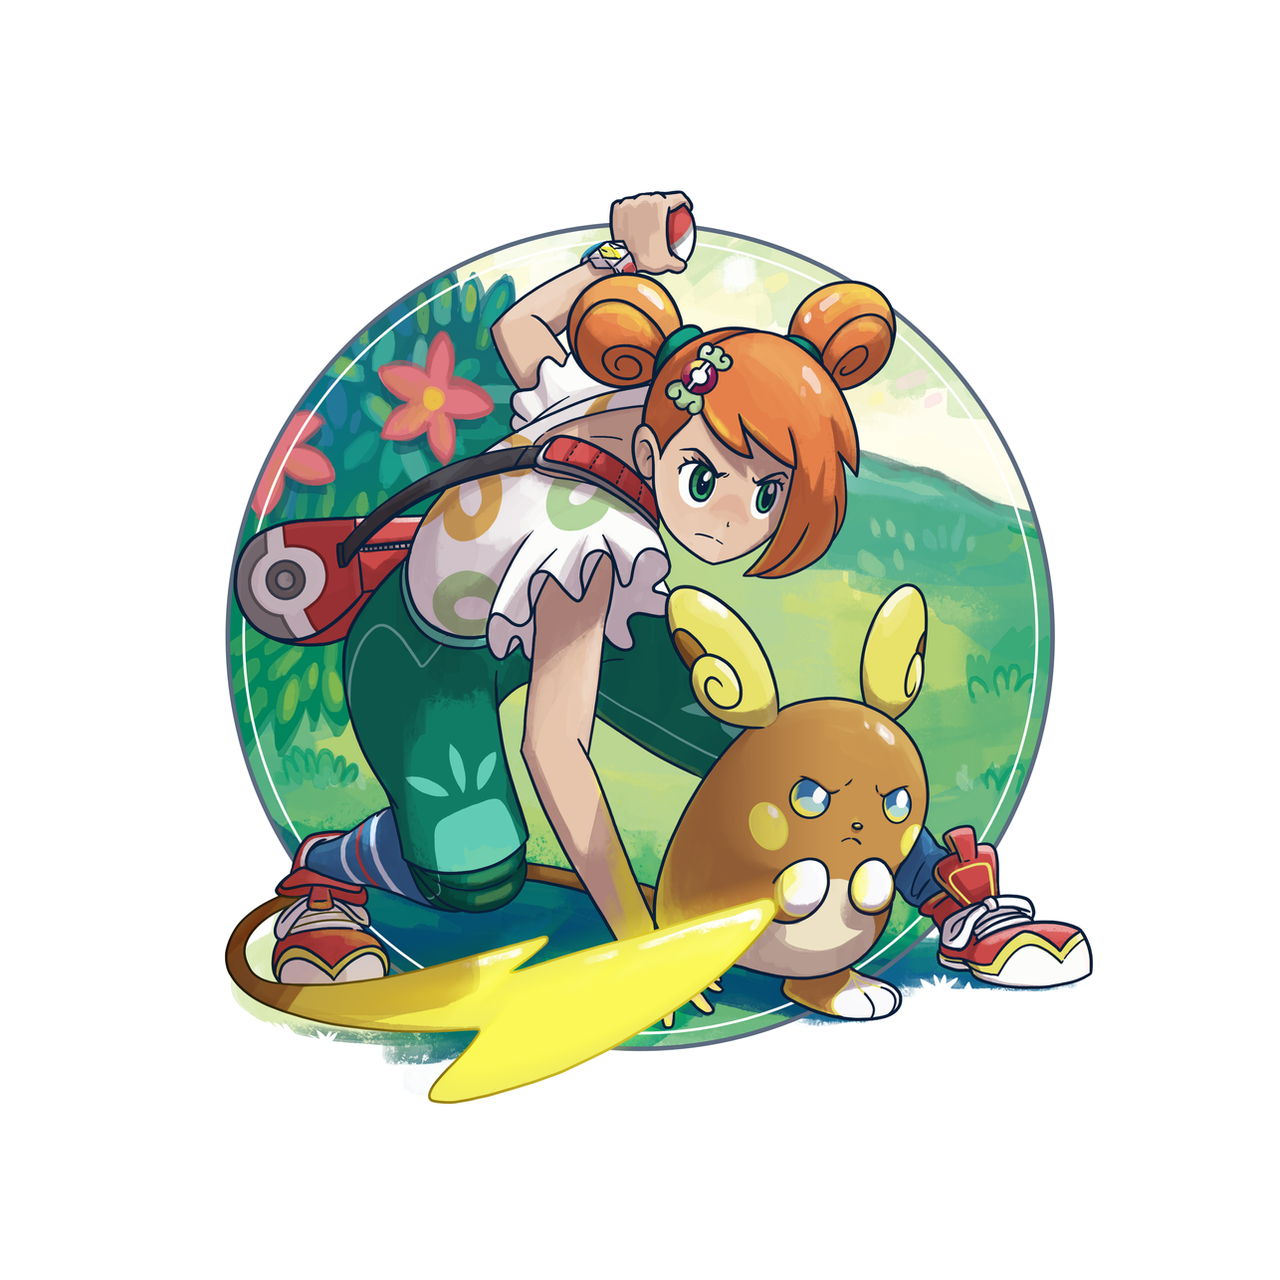 Alolan Raichu And Pokemon Trainer 639528677